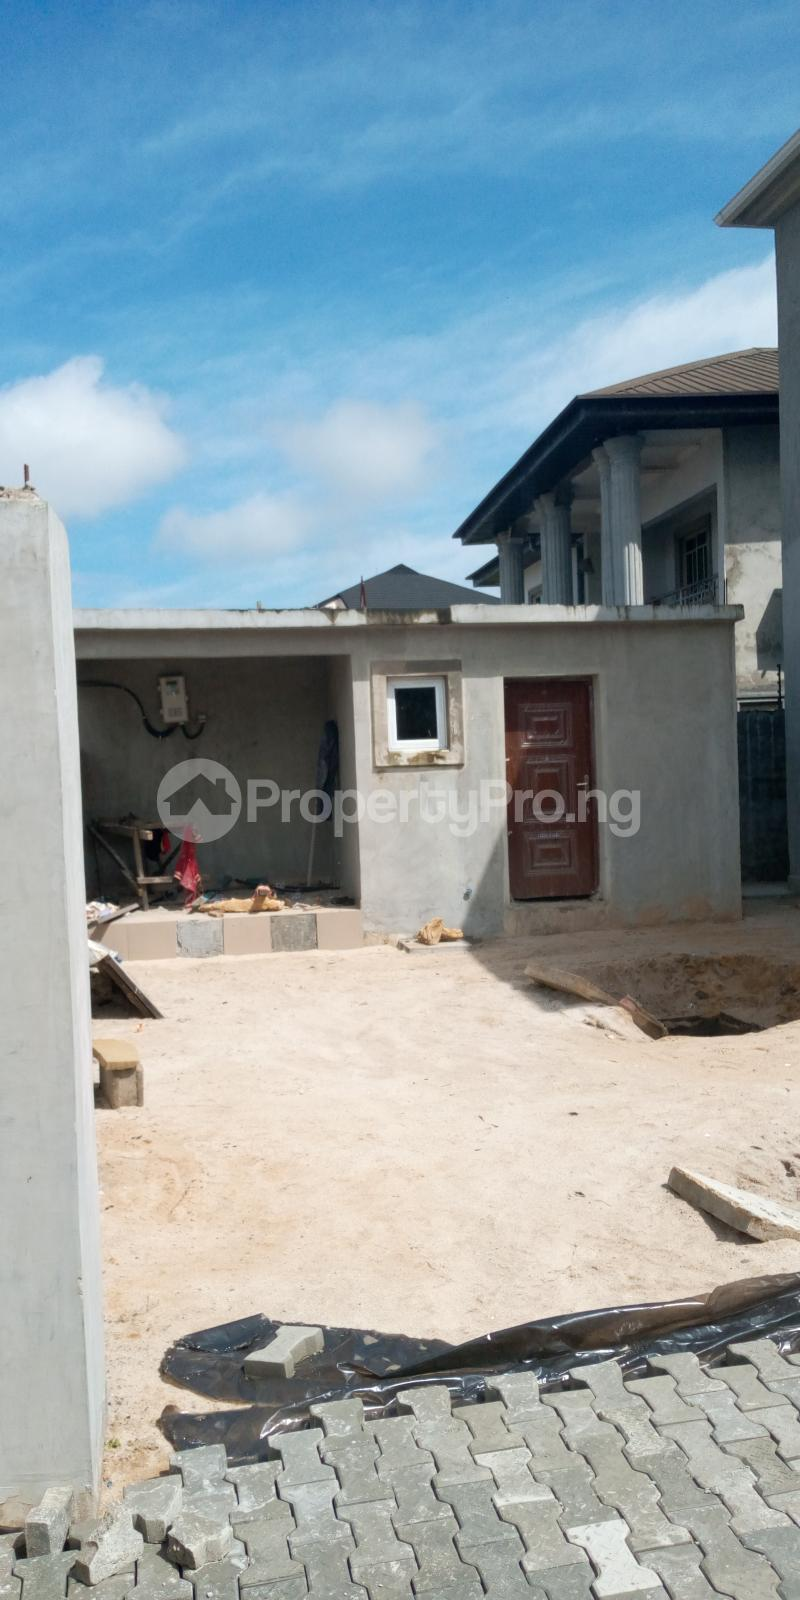 School Commercial Property for sale Eputu Ibeju-Lekki Lagos - 5